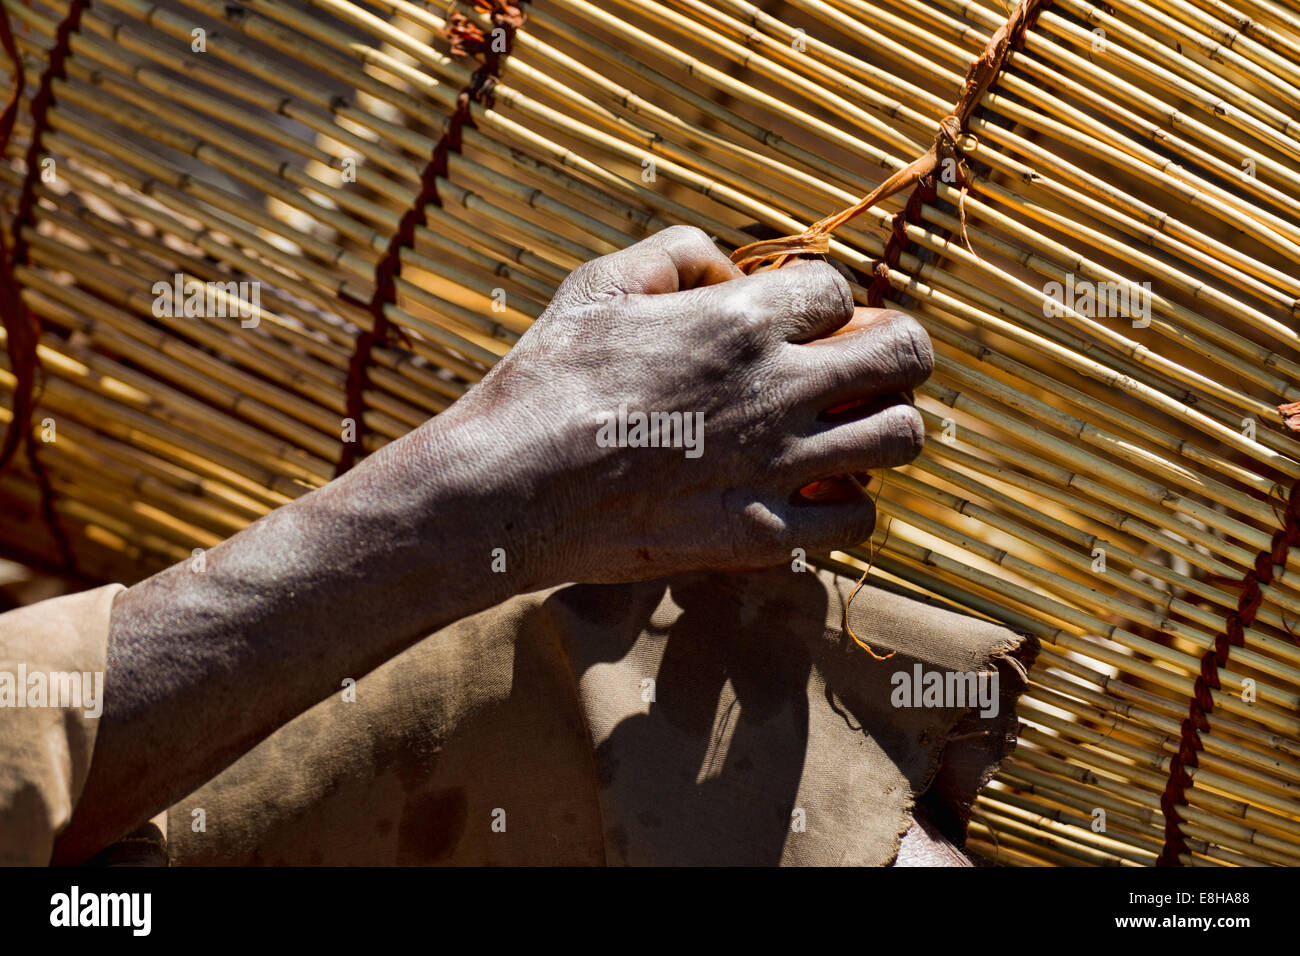 A man ties a knot on a traditional fish trap hand woven in Zambia's Bangweulu Wetlands - Stock Image